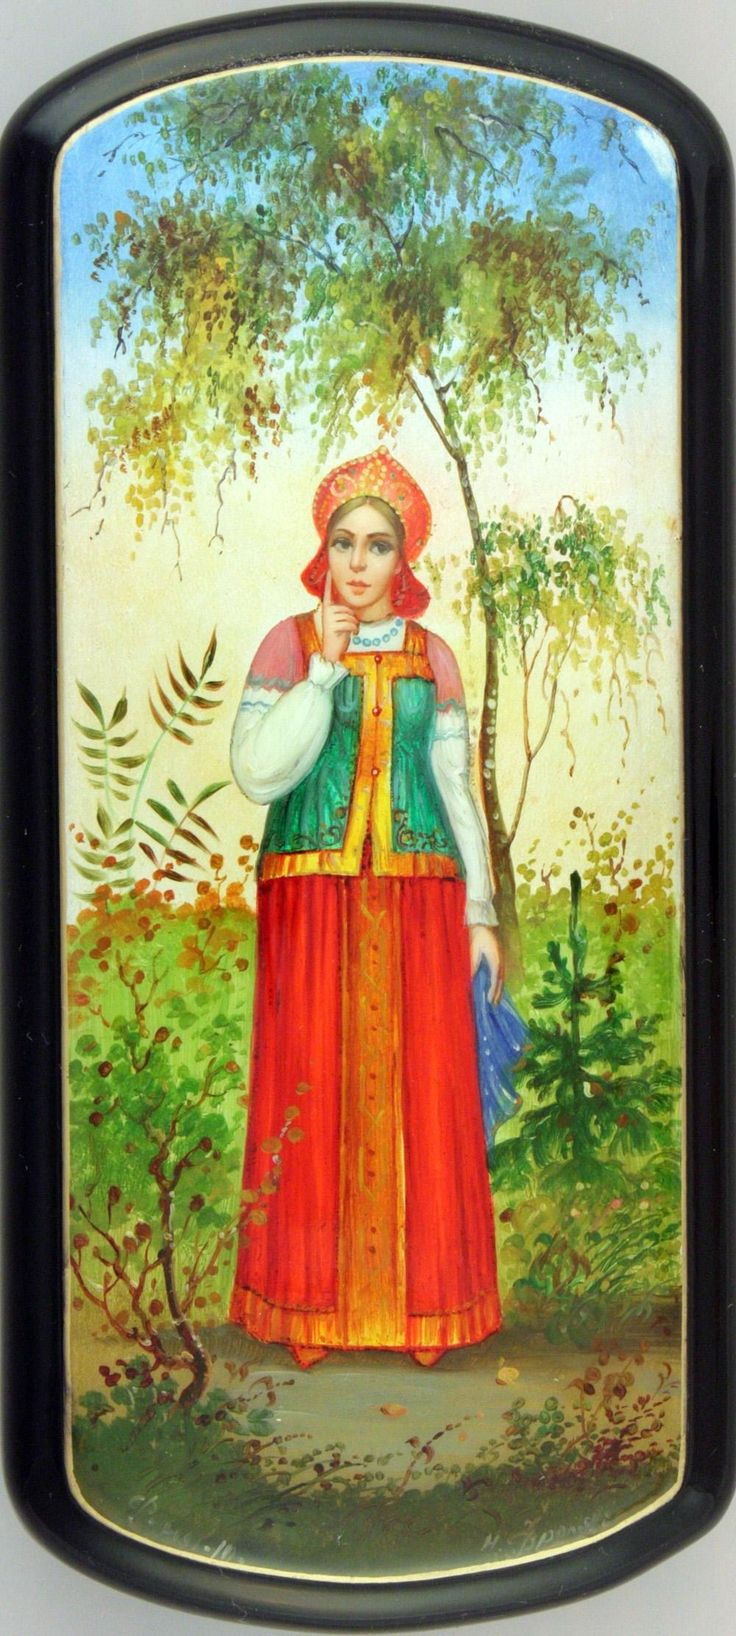 Russian lacquer miniature from the village of Fedoskino. A Russian beauty in a traditional attire and in a kokoshnik headdress.